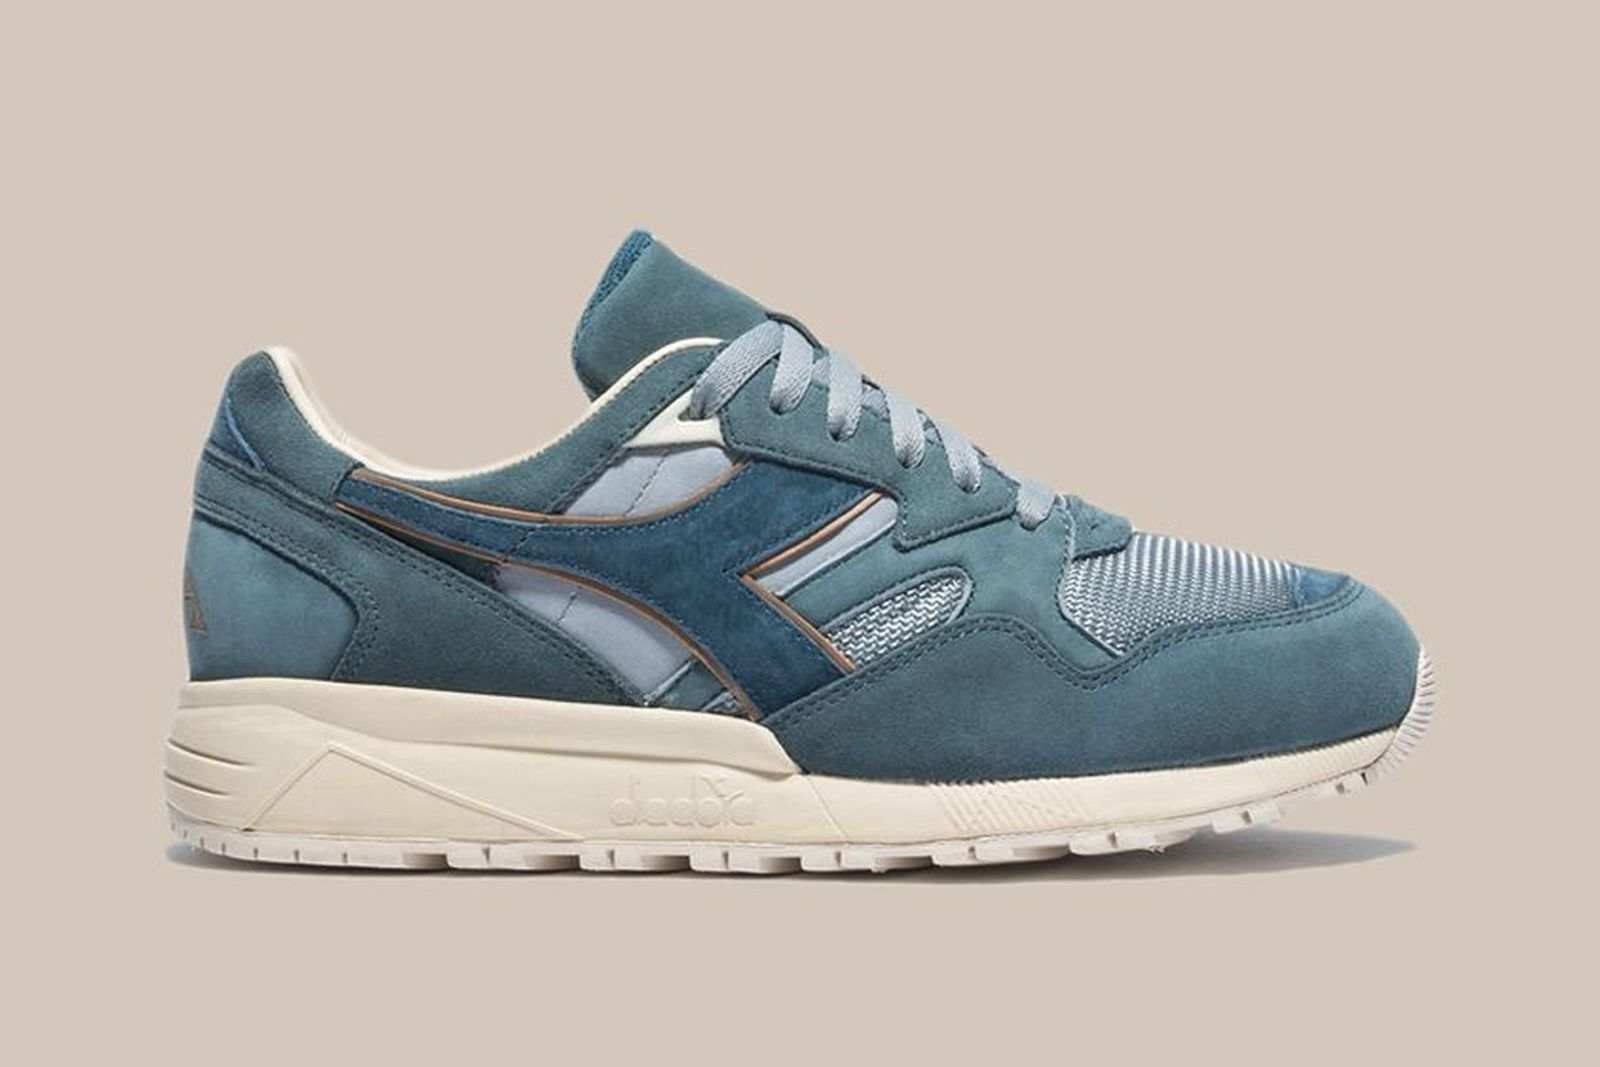 packer-diadora-n9002-molveno-release-date-price-product-05